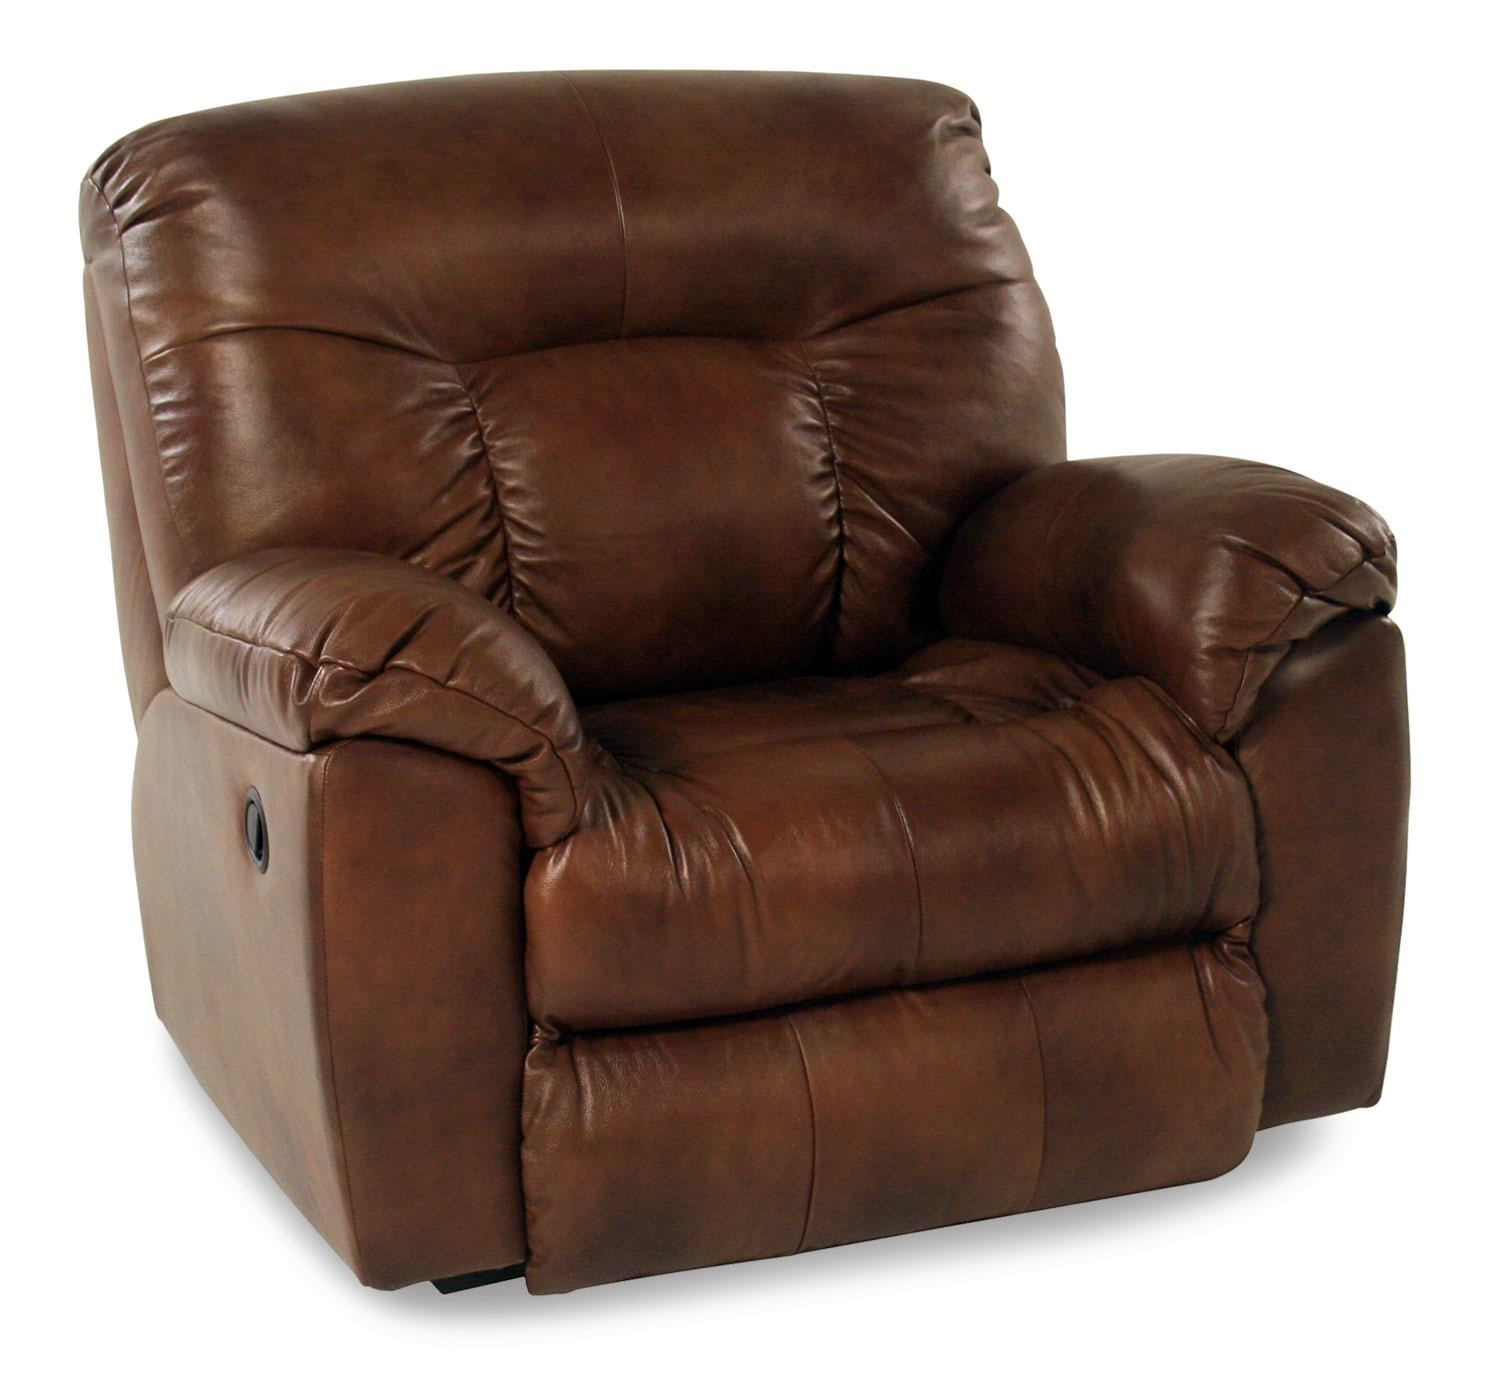 reclining chair and a half costco chairs for sale design to recline mariposa oversized leather power recliner